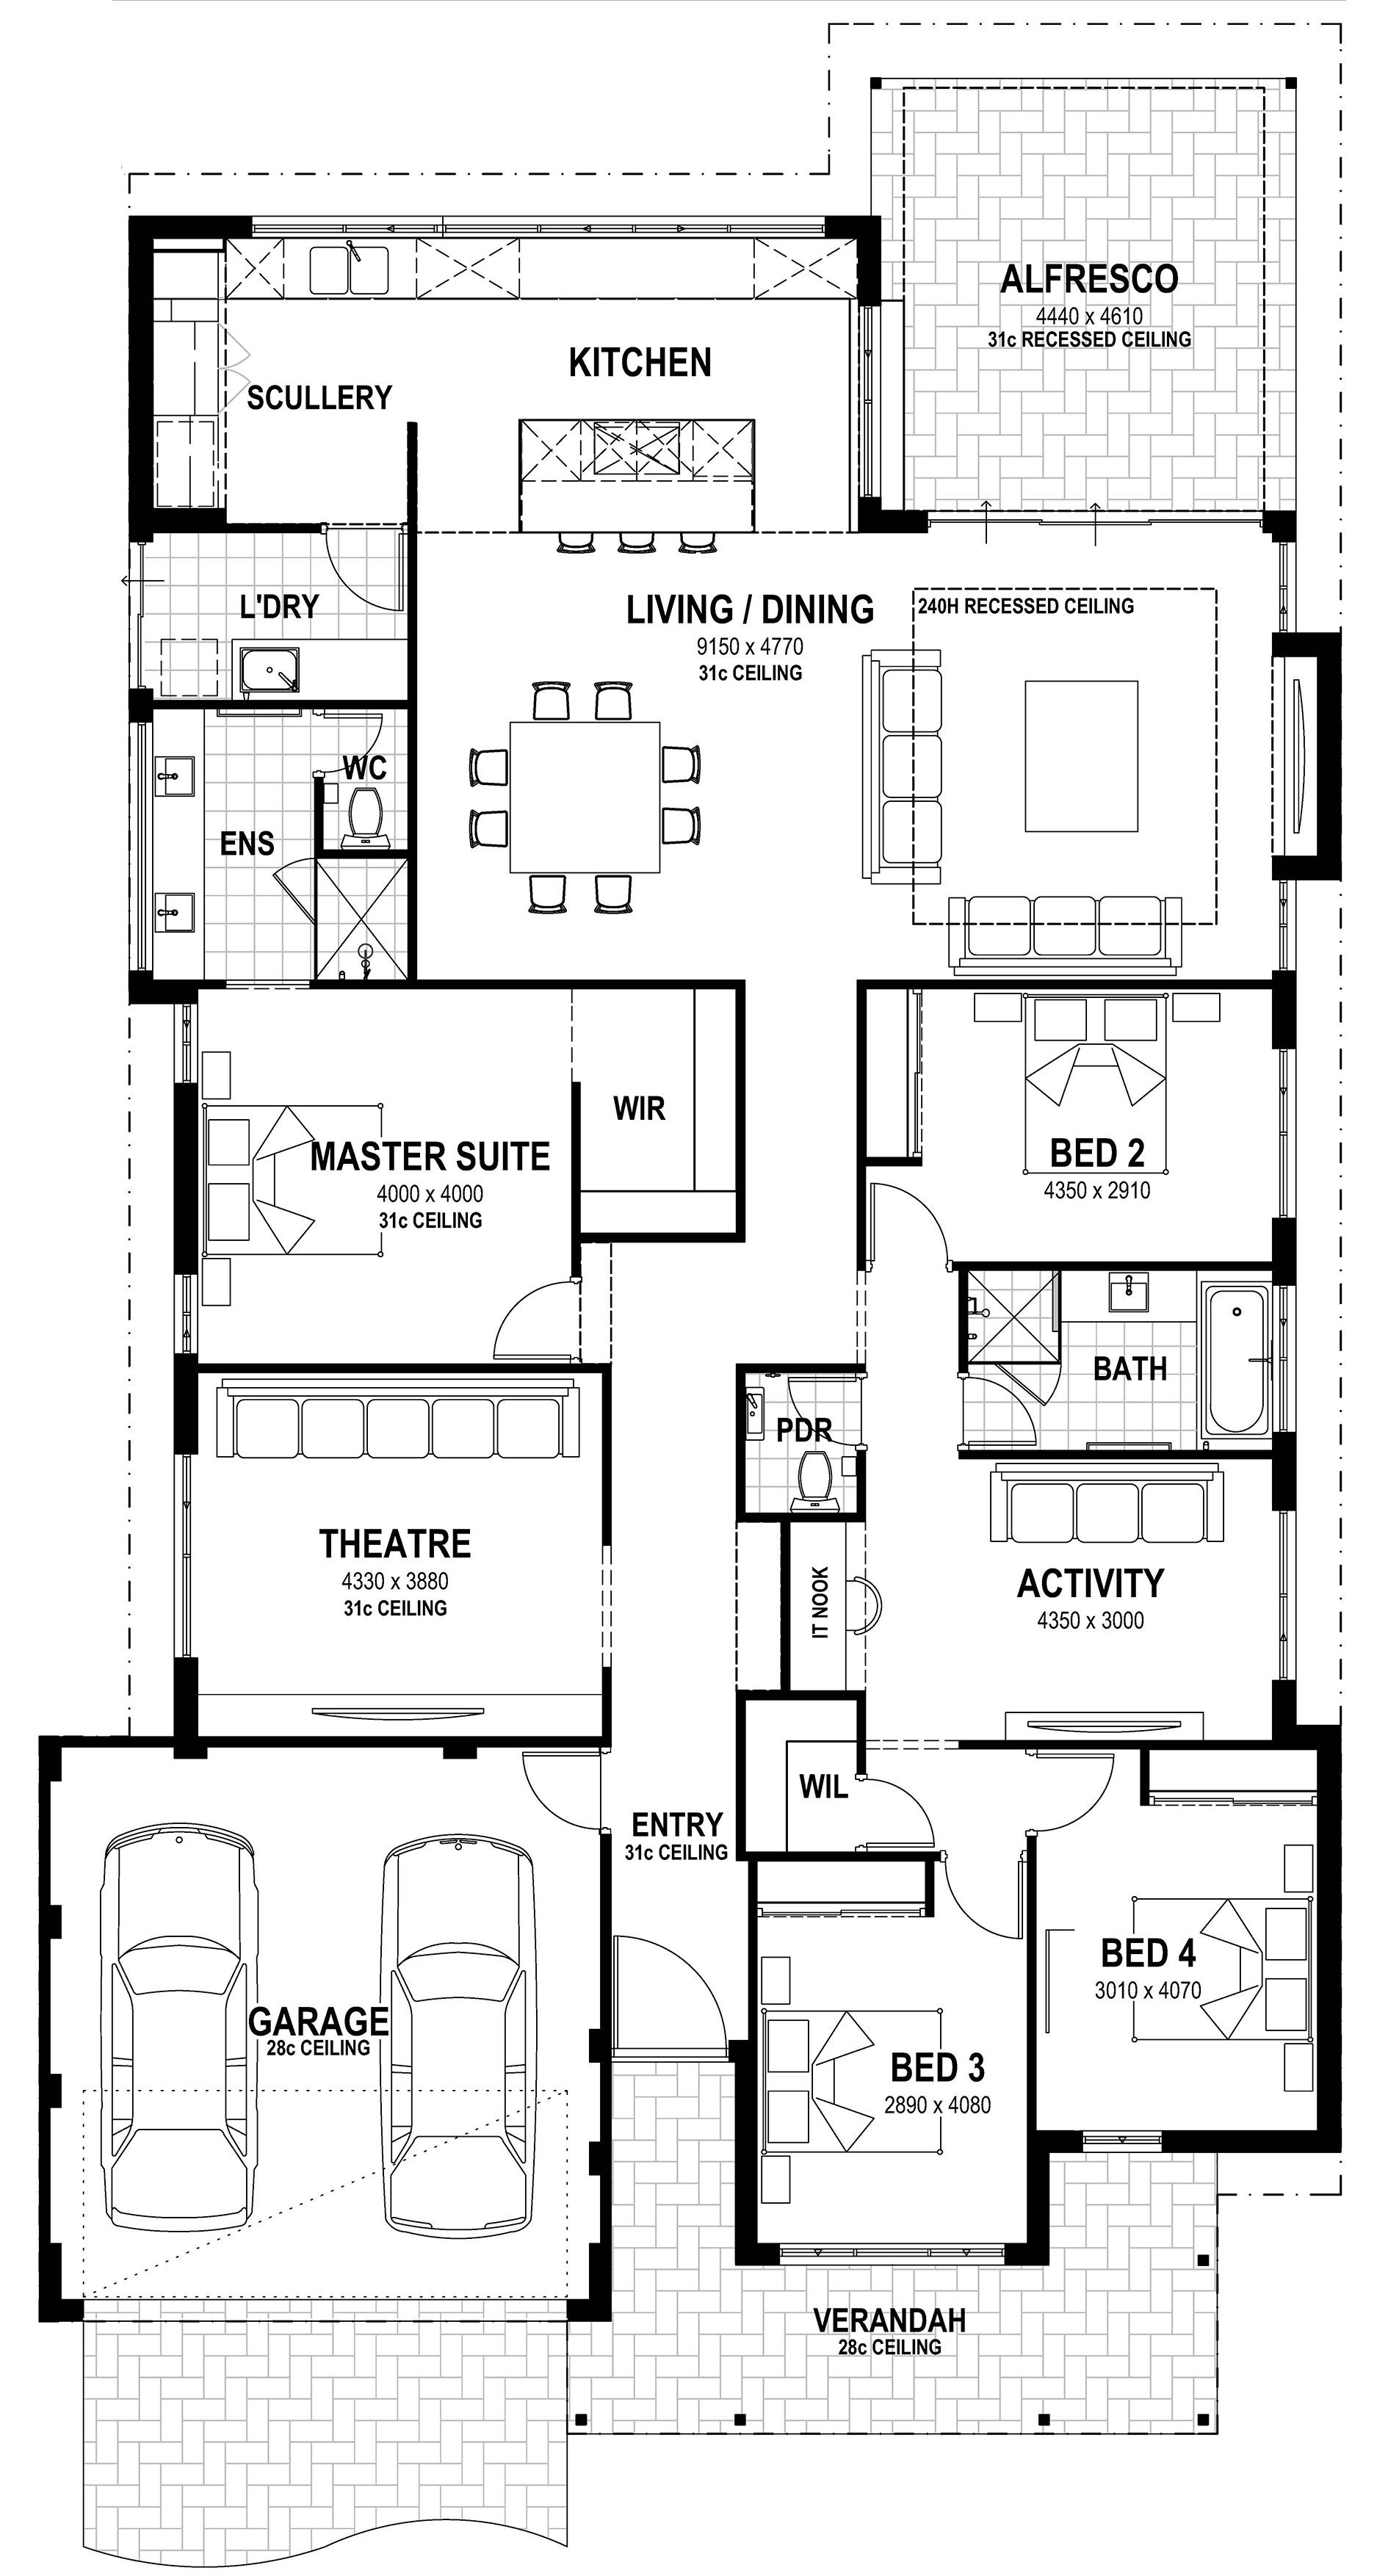 Orchard - South West - Lot 5 Pascoe Way floorplan | Dream Home ...